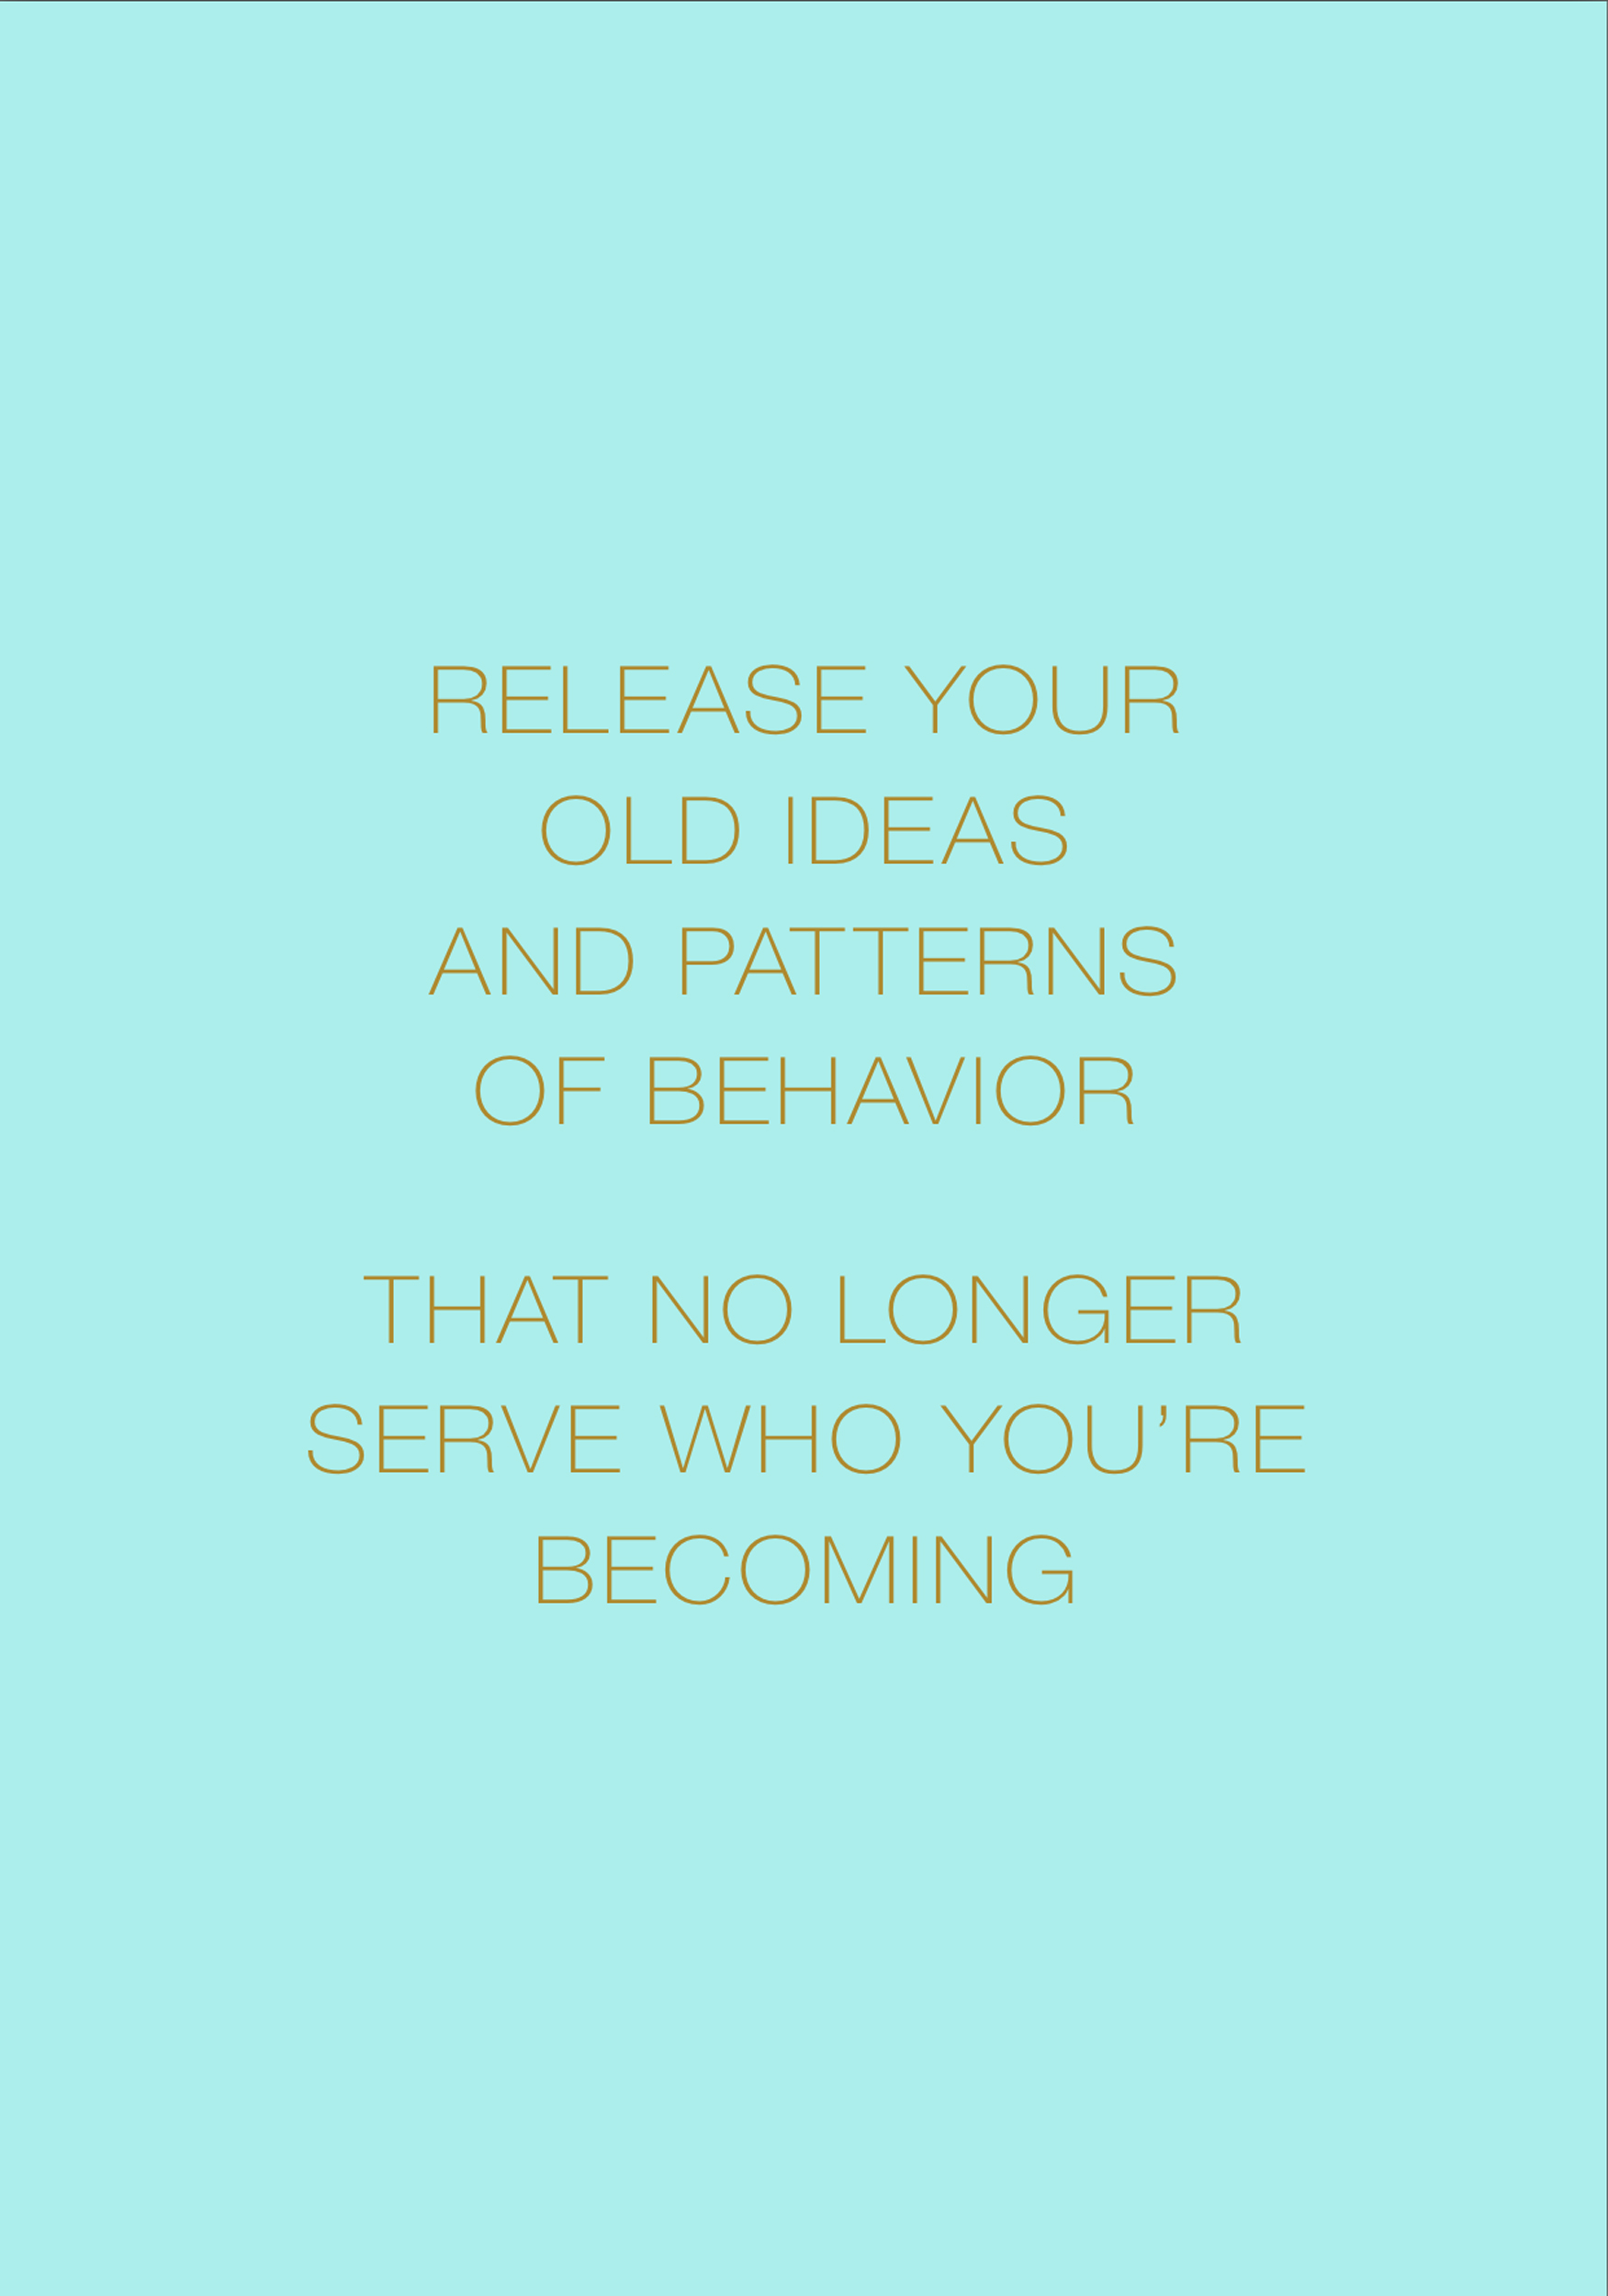 Let It Go Mantra: Release Your Old Ideas and Patterns of Behavior,That No Longer Serve Who You're Becoming